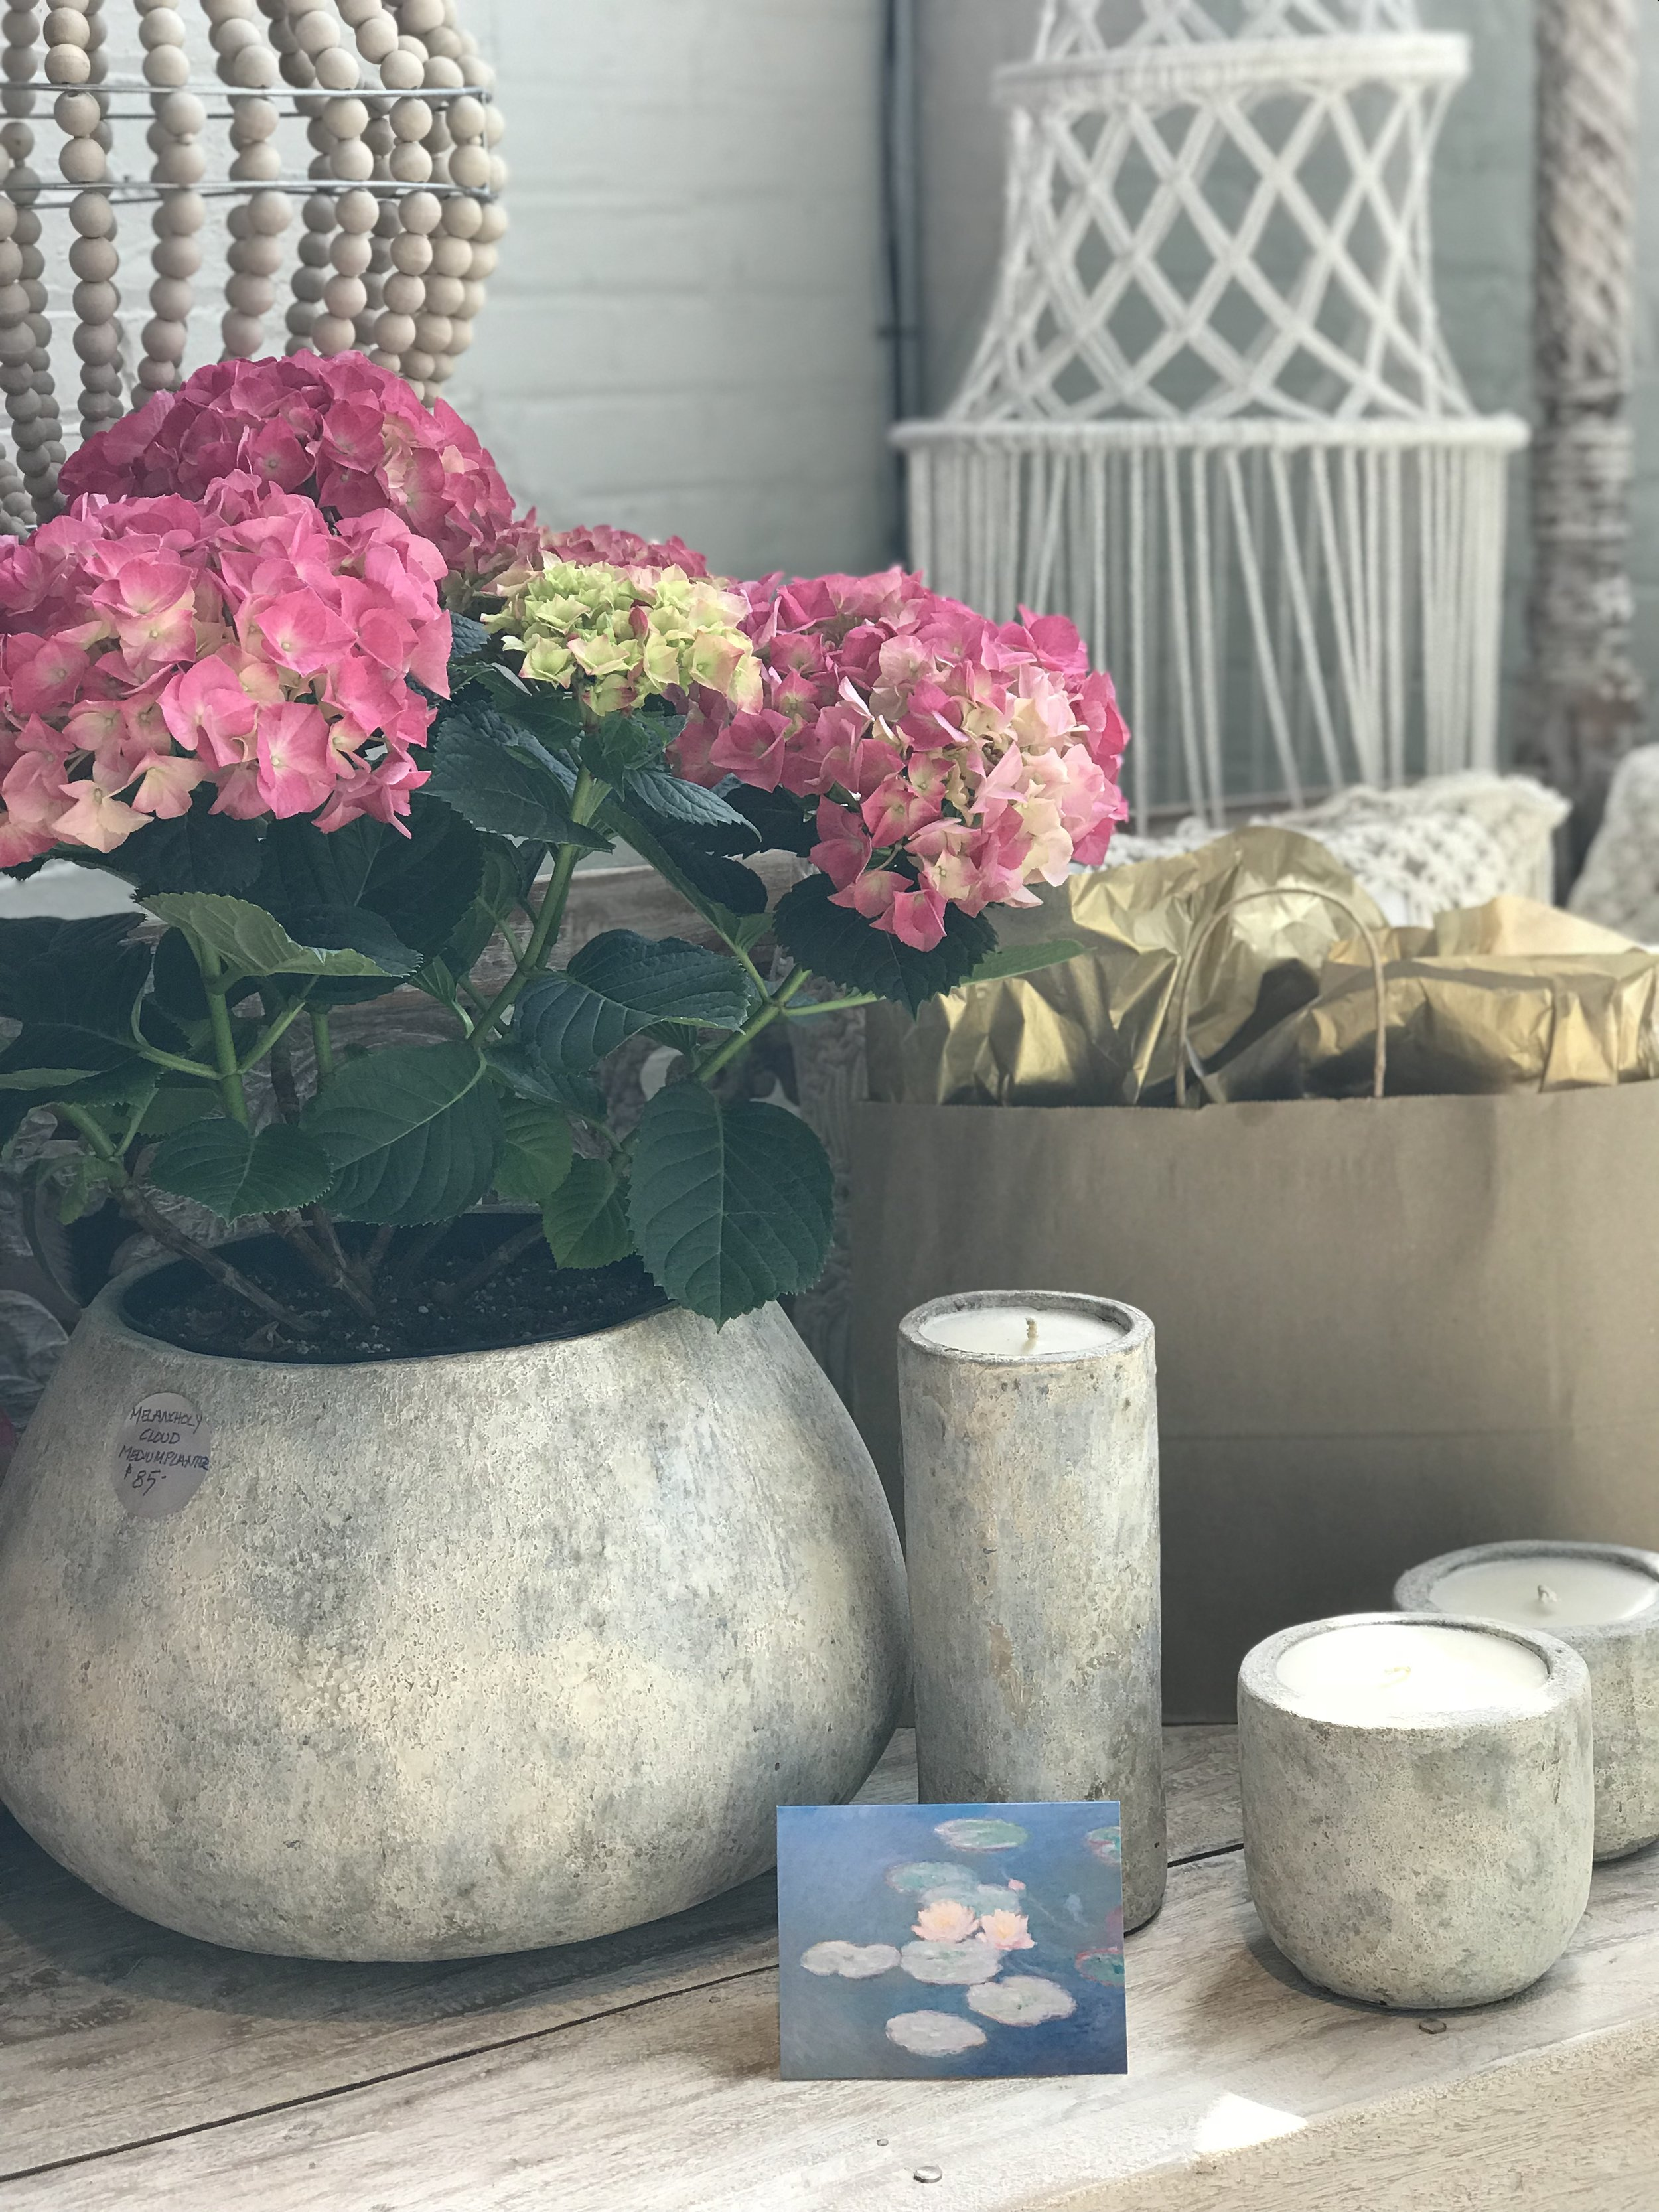 Mother's Day gift guide. Hydrangea, crochet and candles.